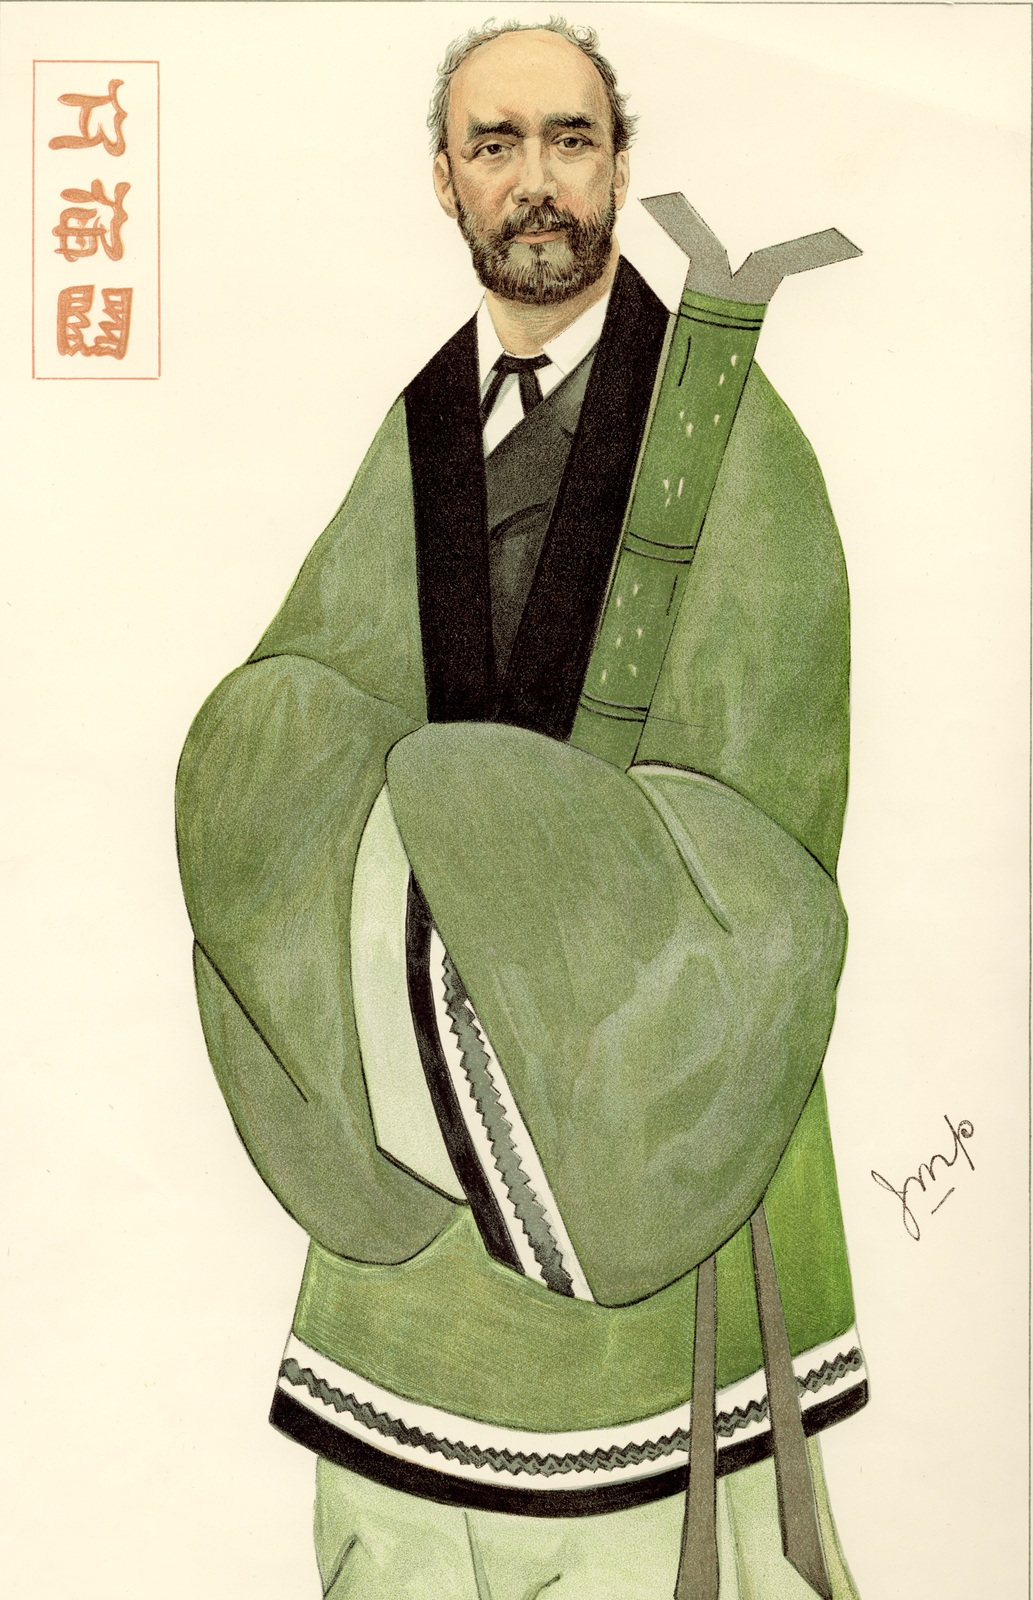 'Chinese Customs'. Original drawing by IMP for cartoon published in Vanity Fair